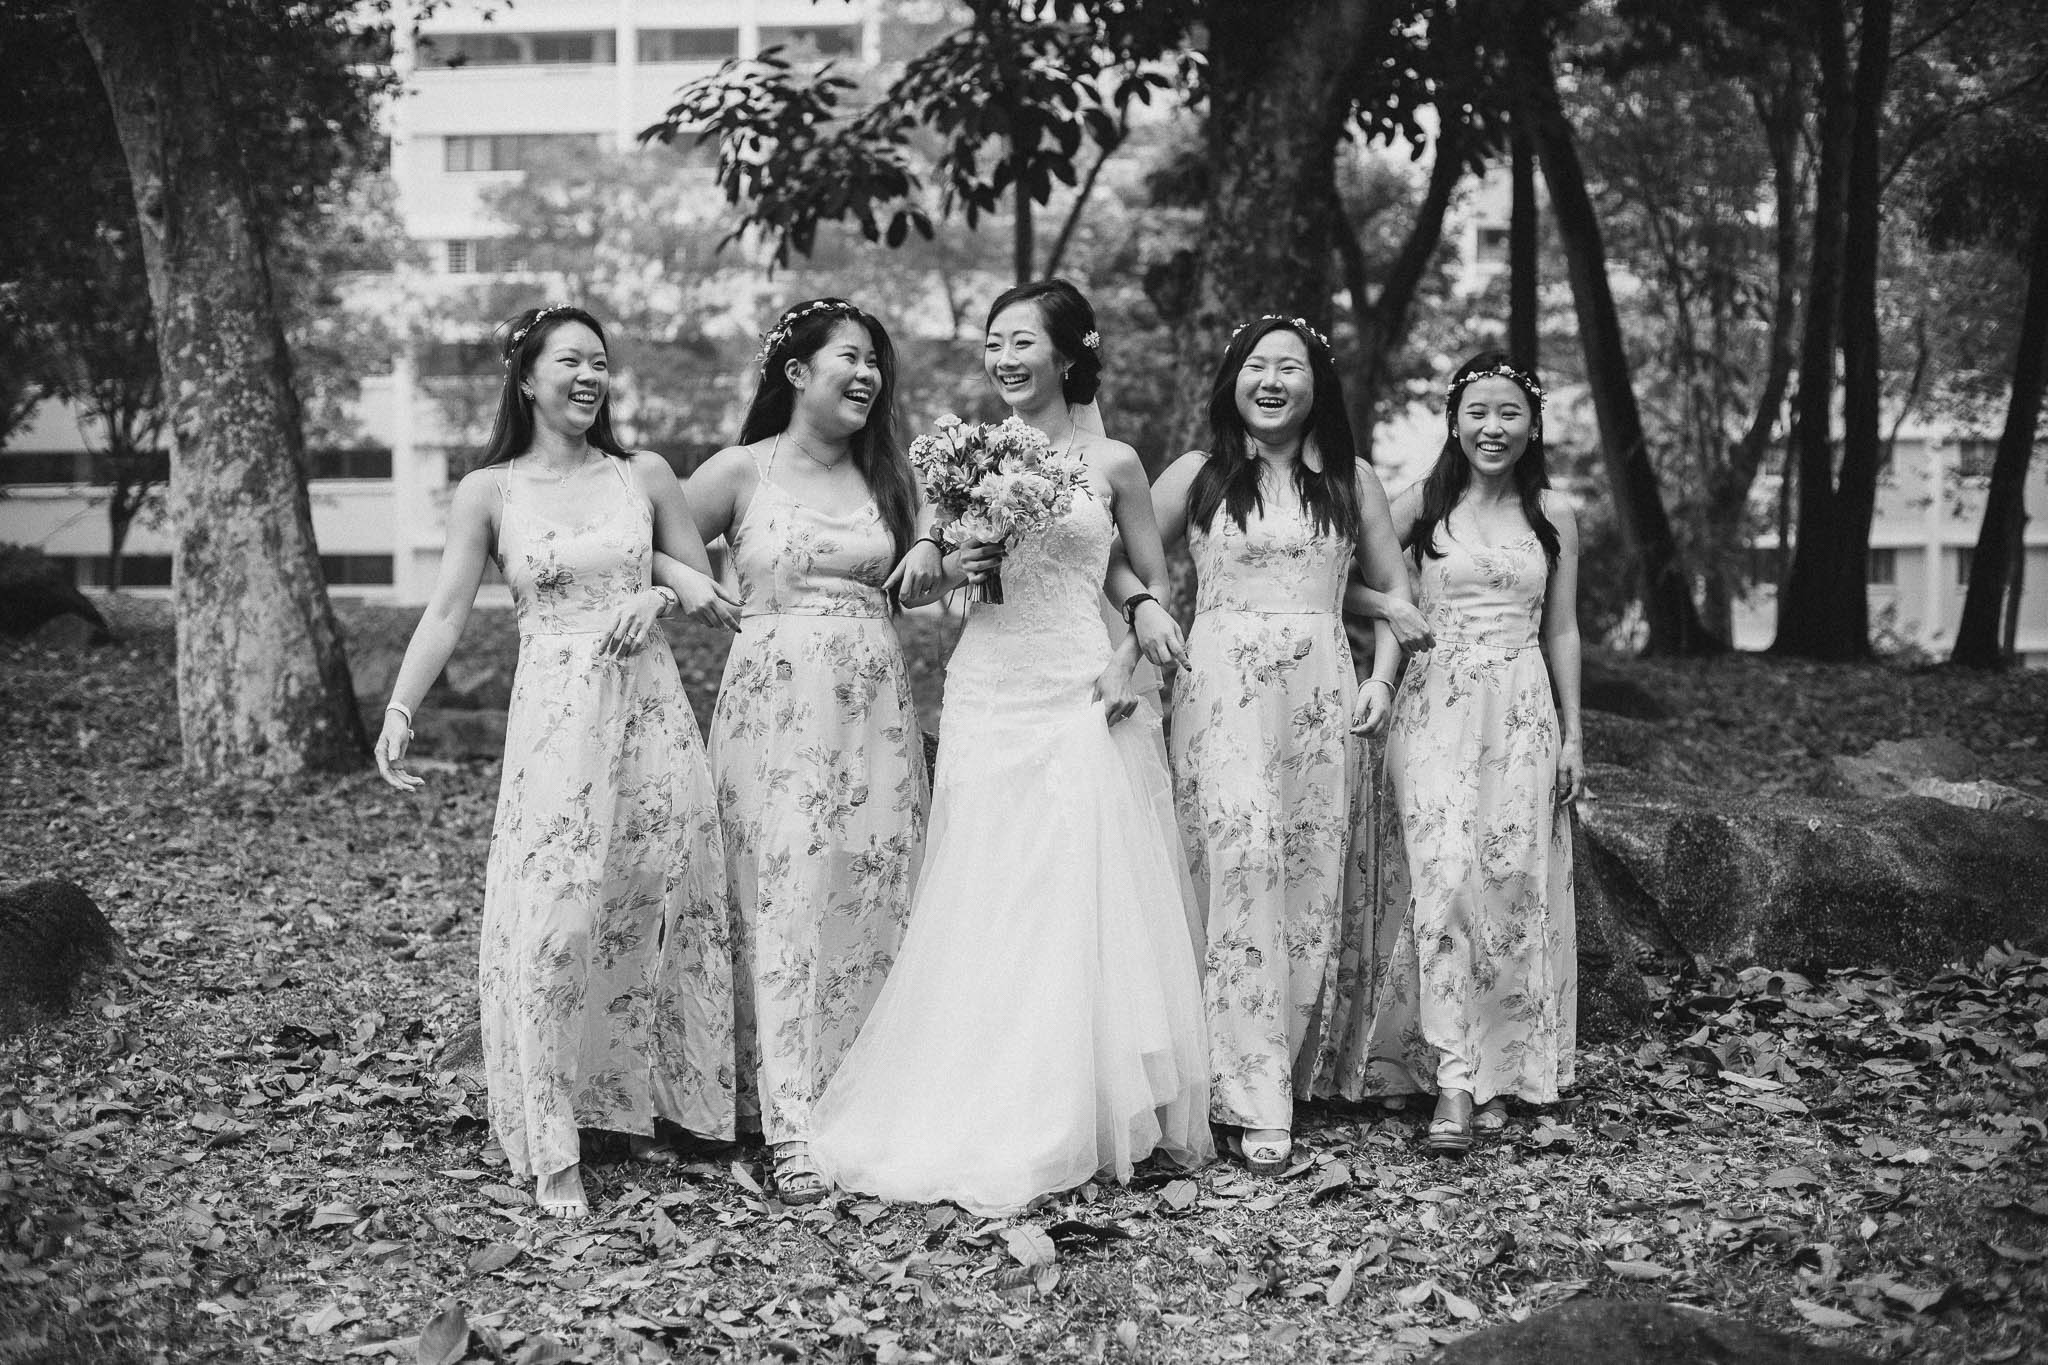 singapore-wedding-photographer-travel-senghan-huihui-18.jpg